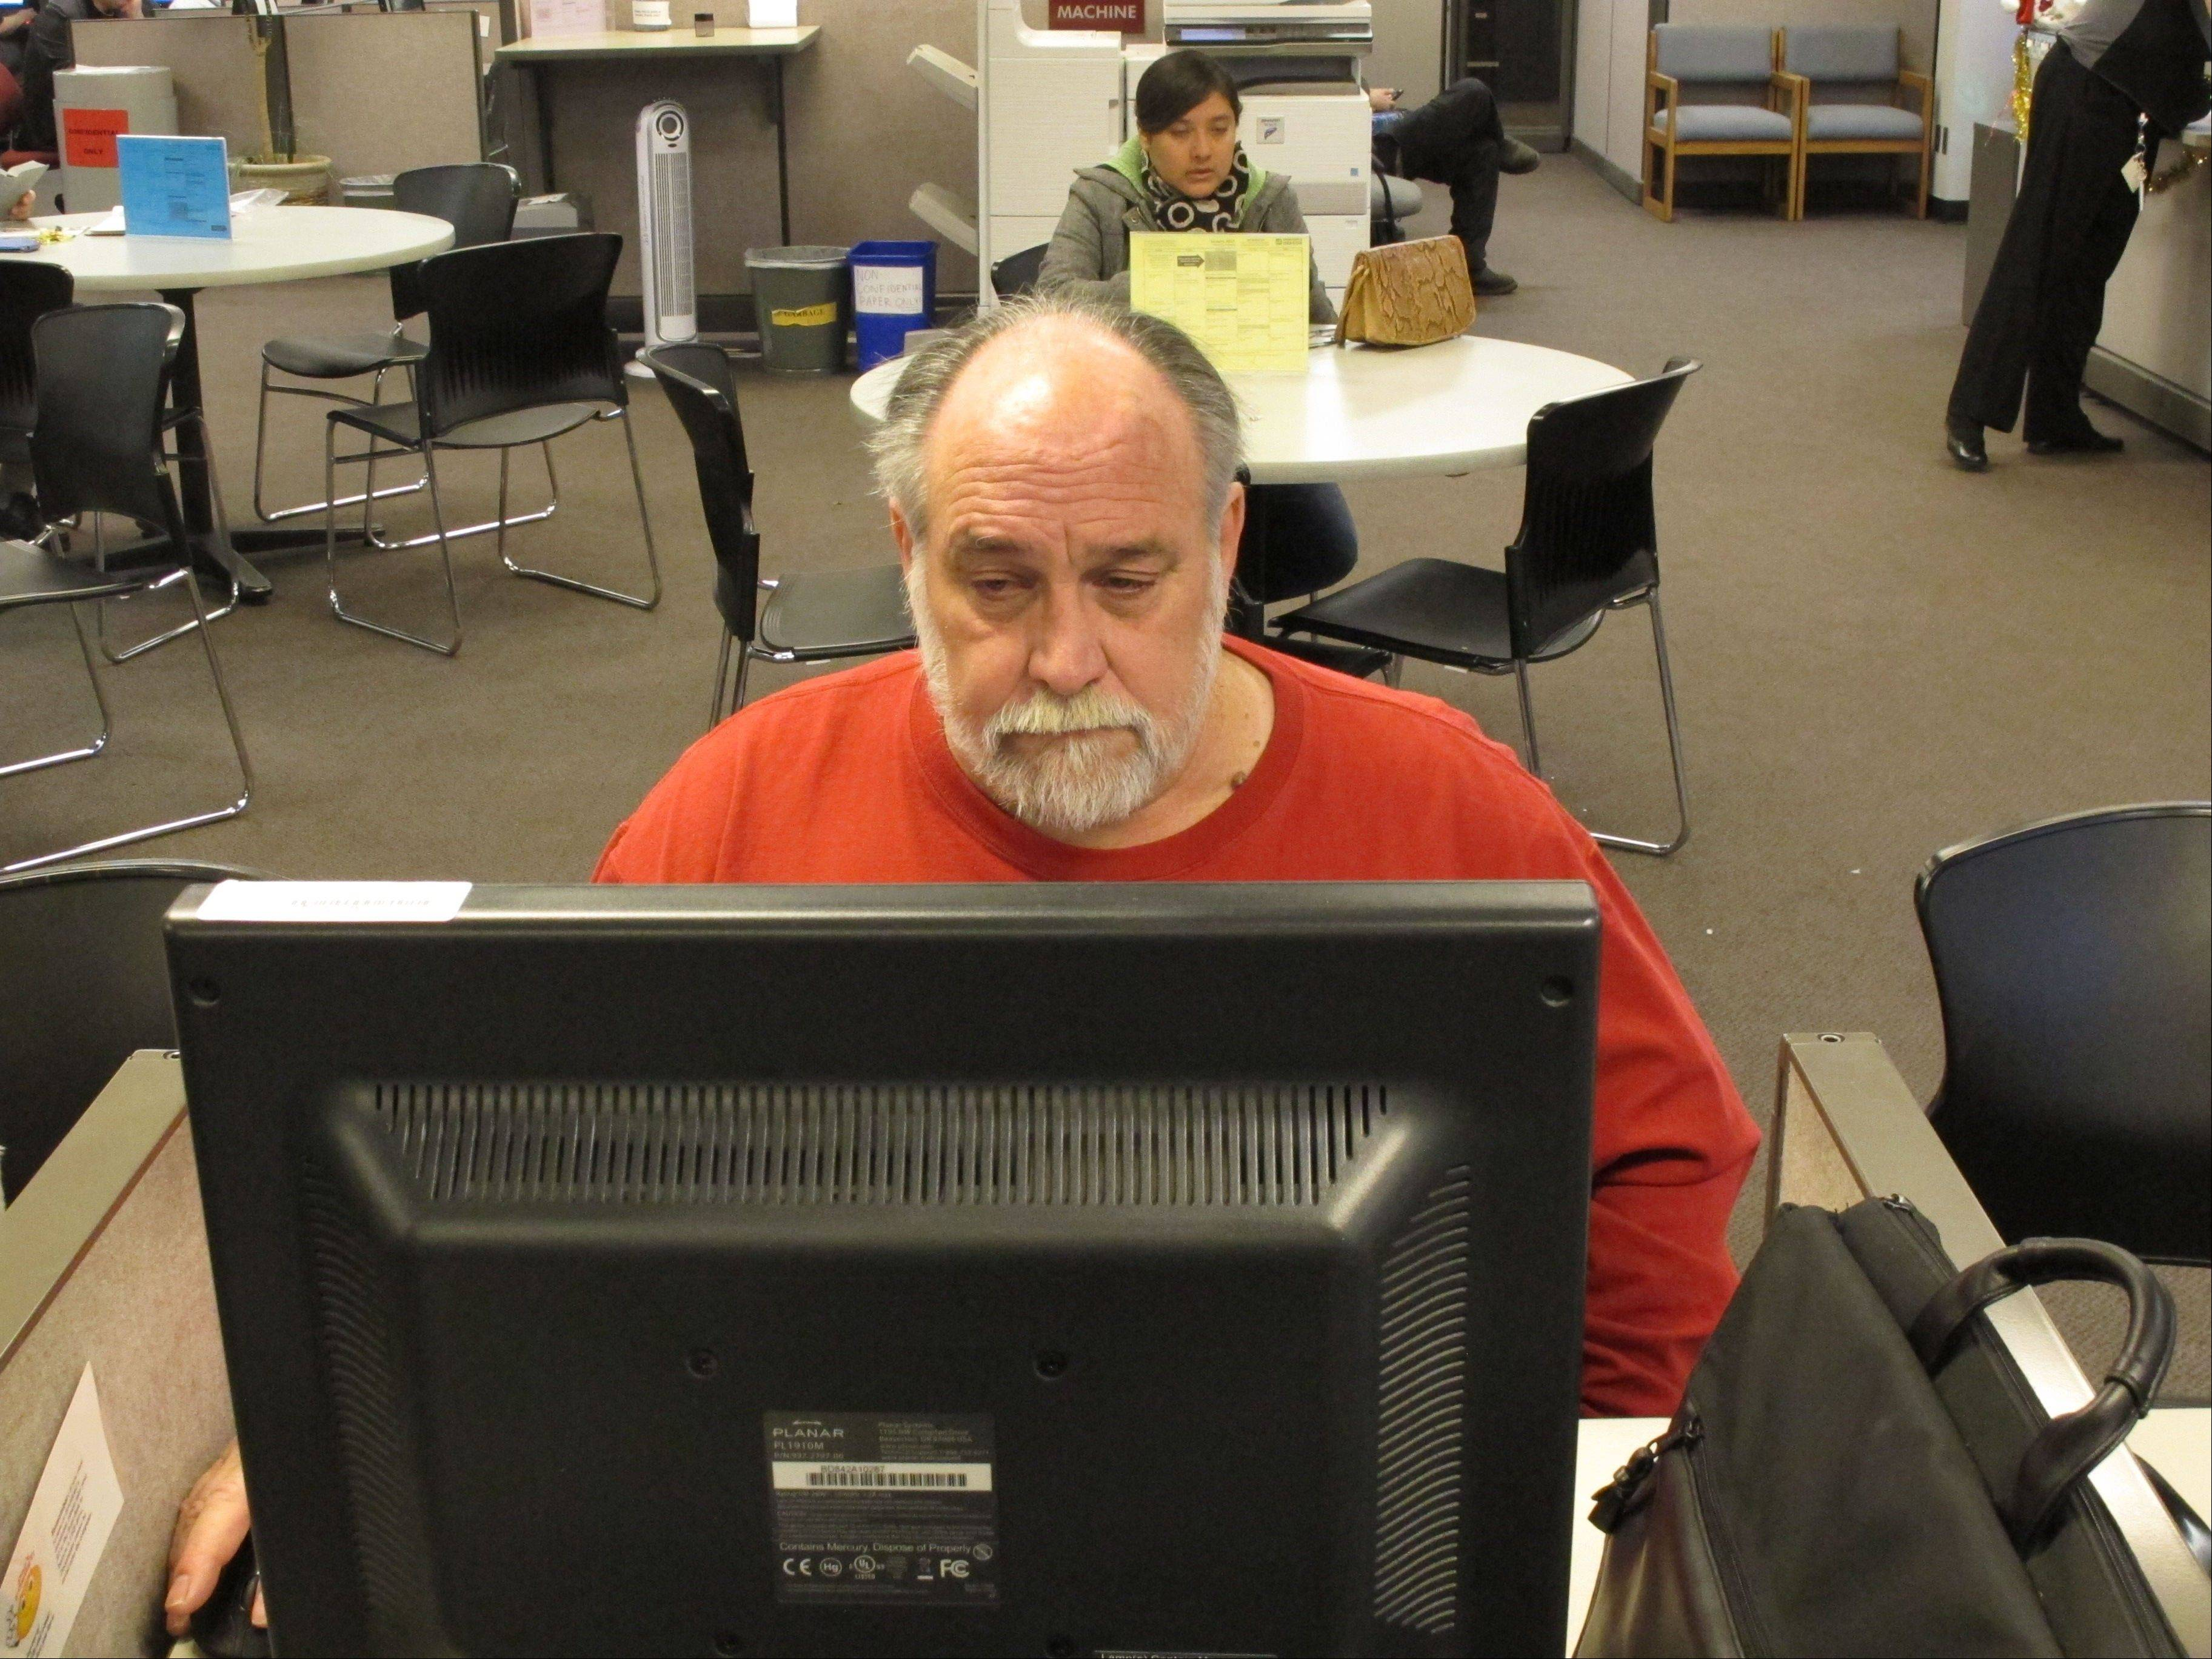 Richard Mattos, 59, looks for jobs at a state-run employment center in Salem, Ore., on Thursday. Mattos is one of more than 1 million Americans who are losing federal unemployment benefits at year�s end.